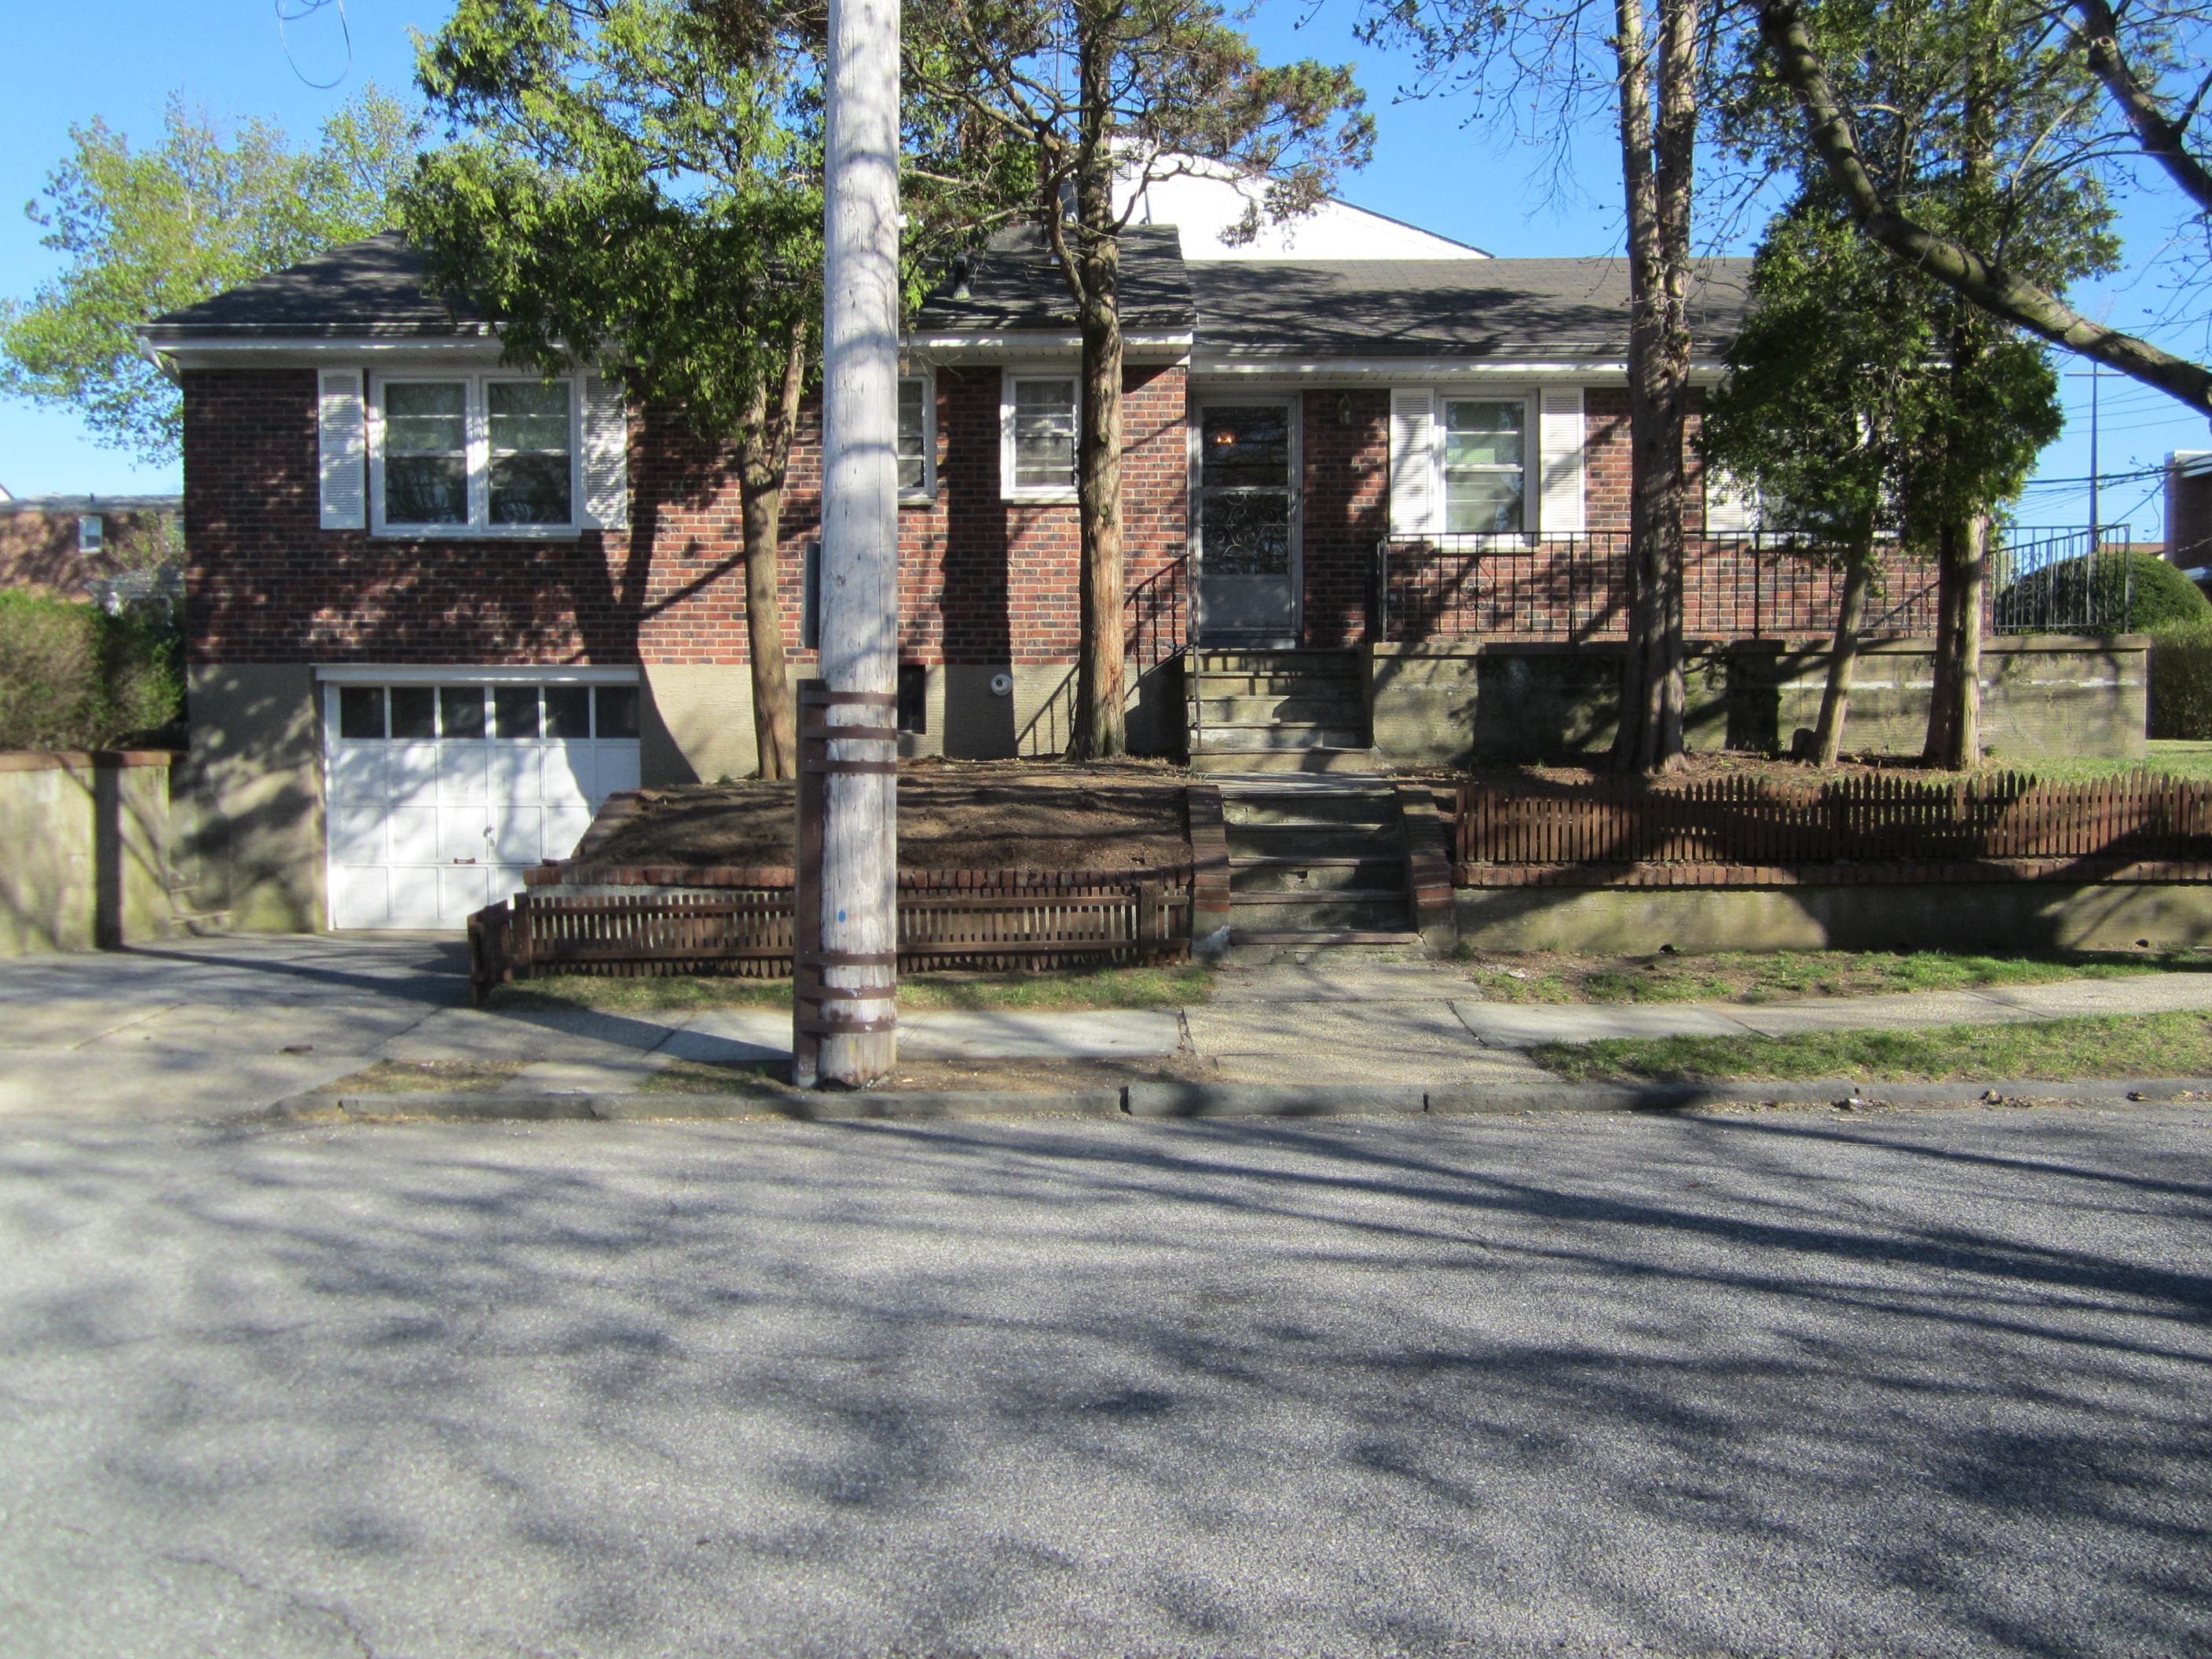 Residential/Commercial(s) for Sale